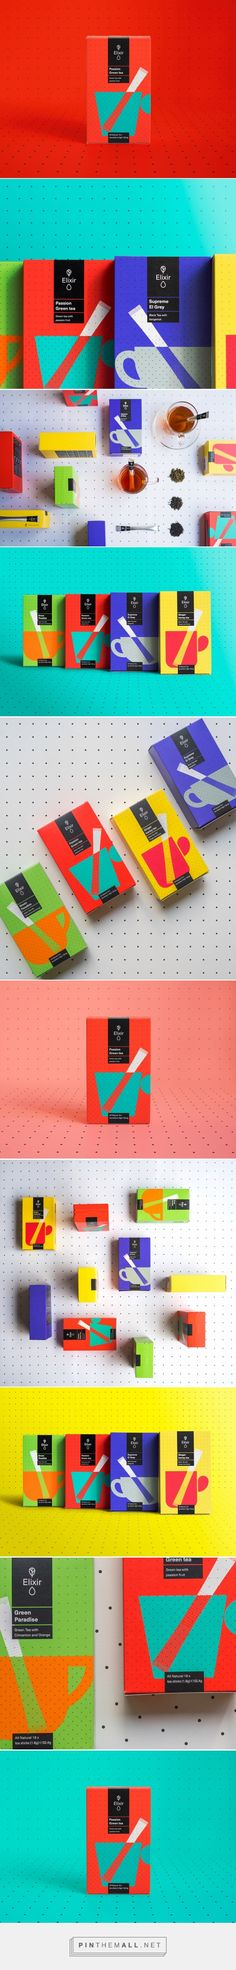 Elixir Tea packaging designed by Typical. (Greece) - http://www.packagingoftheworld.com/2016/03/elixir-tea-new-tea-ceremony.html